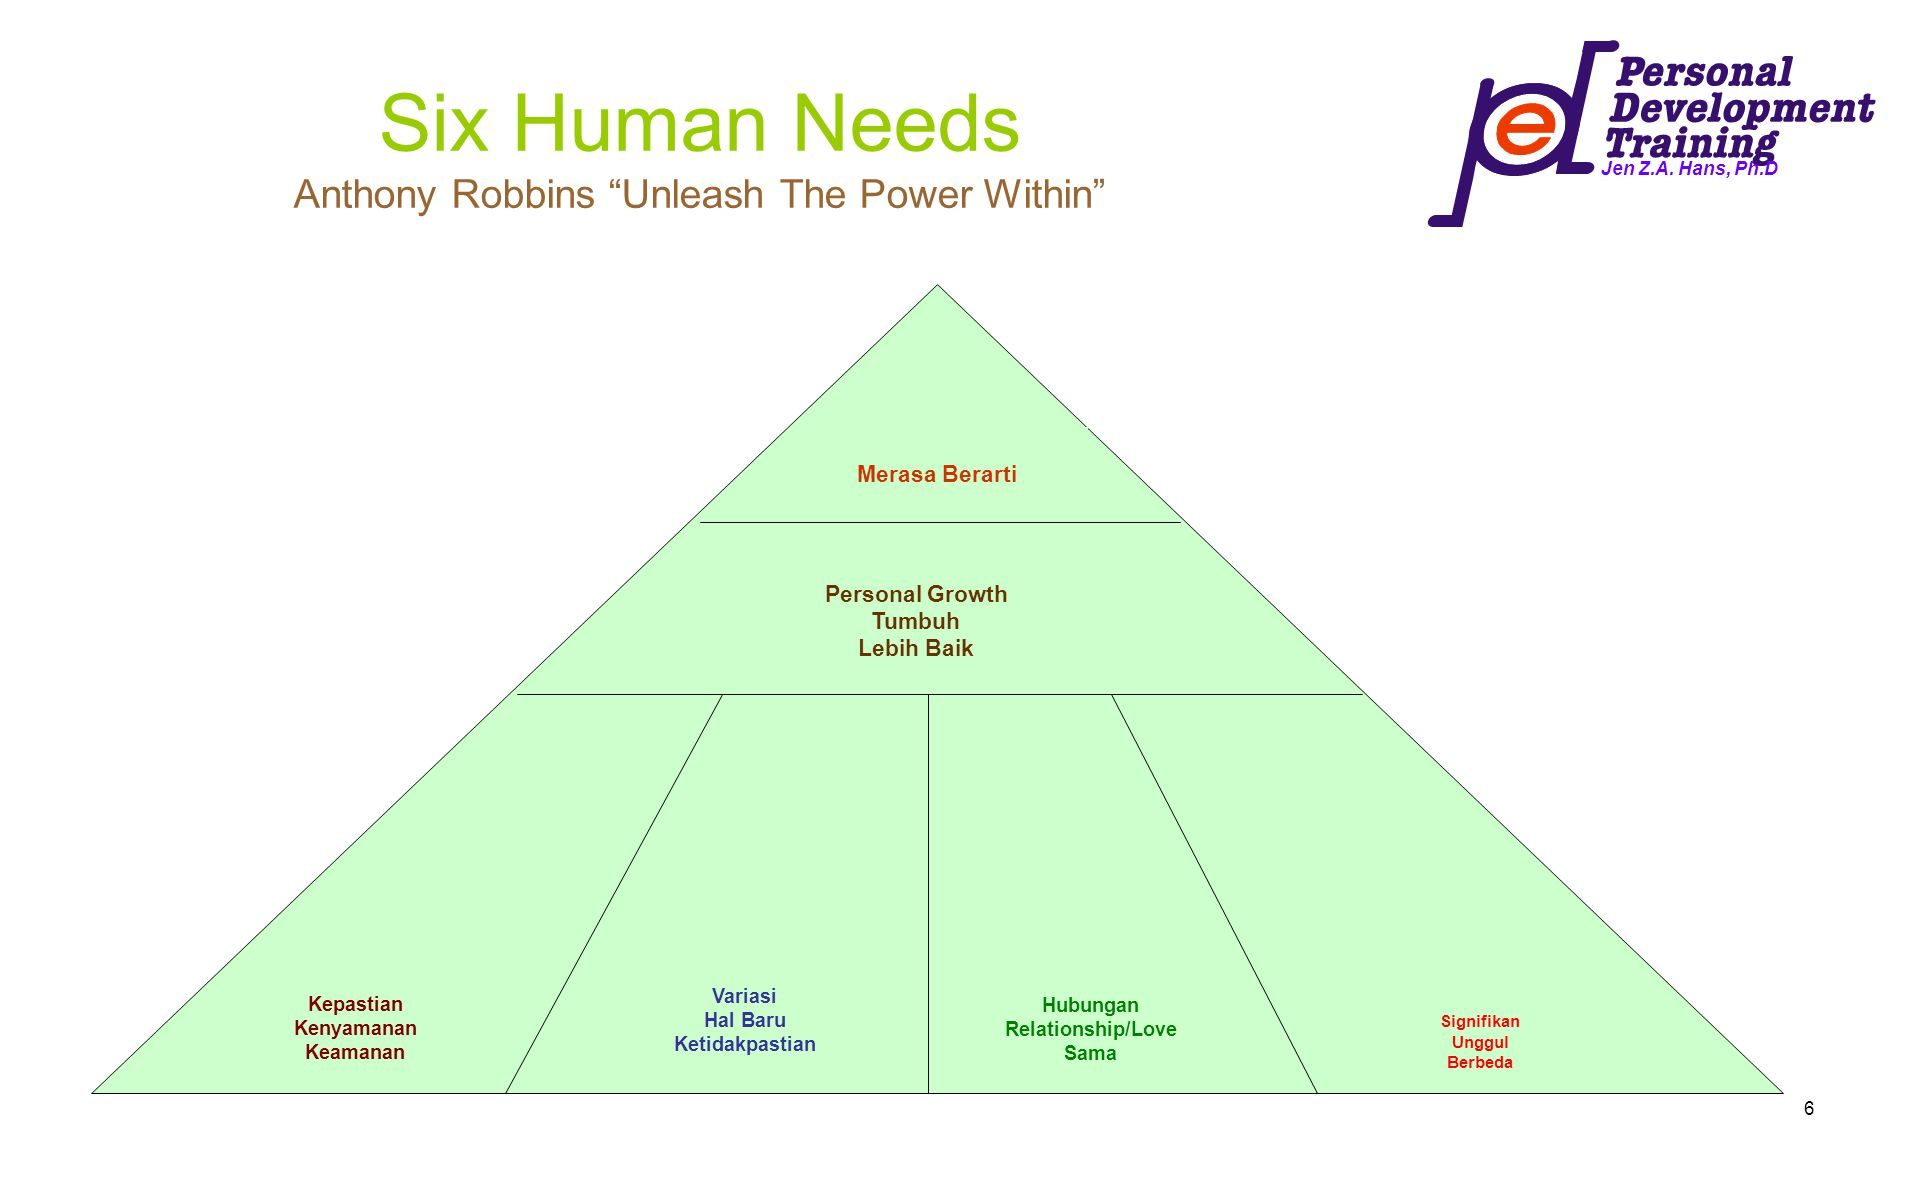 Six Human Needs Anthony Robbins Unleash The Power Within